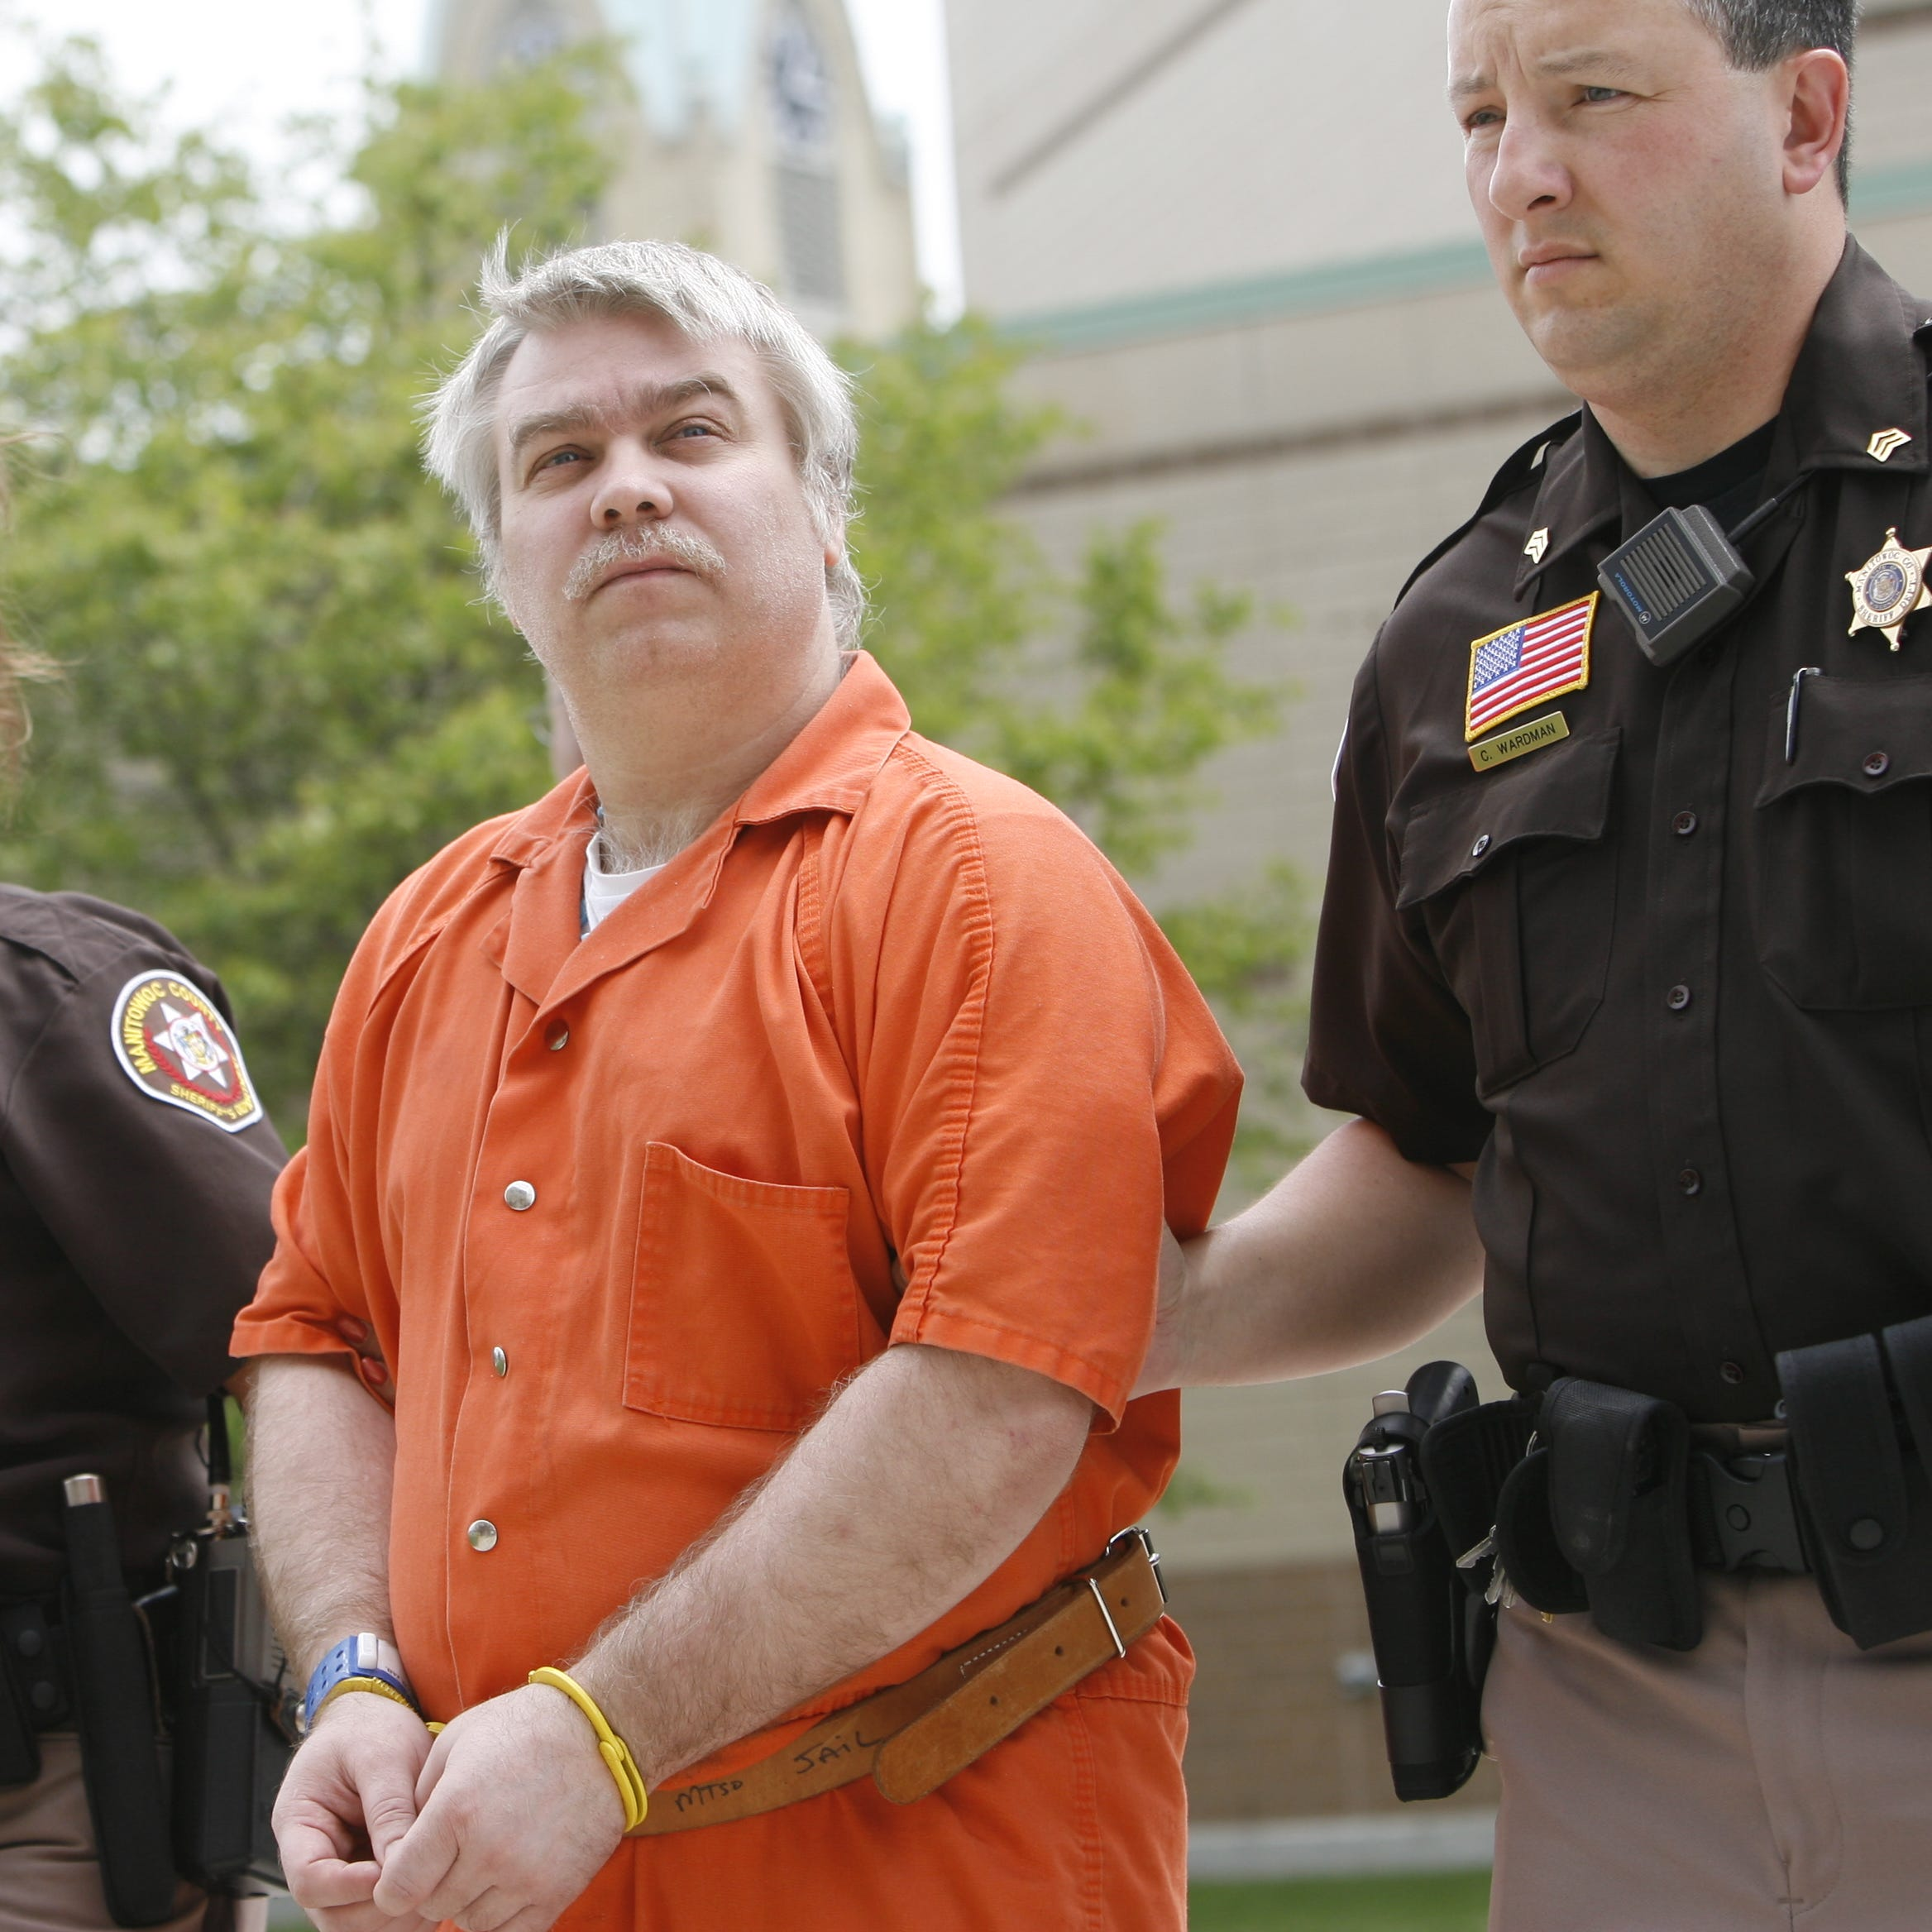 Steven Avery's attorneys ask judge to reject Wisconsin Department of Justice procedural claims